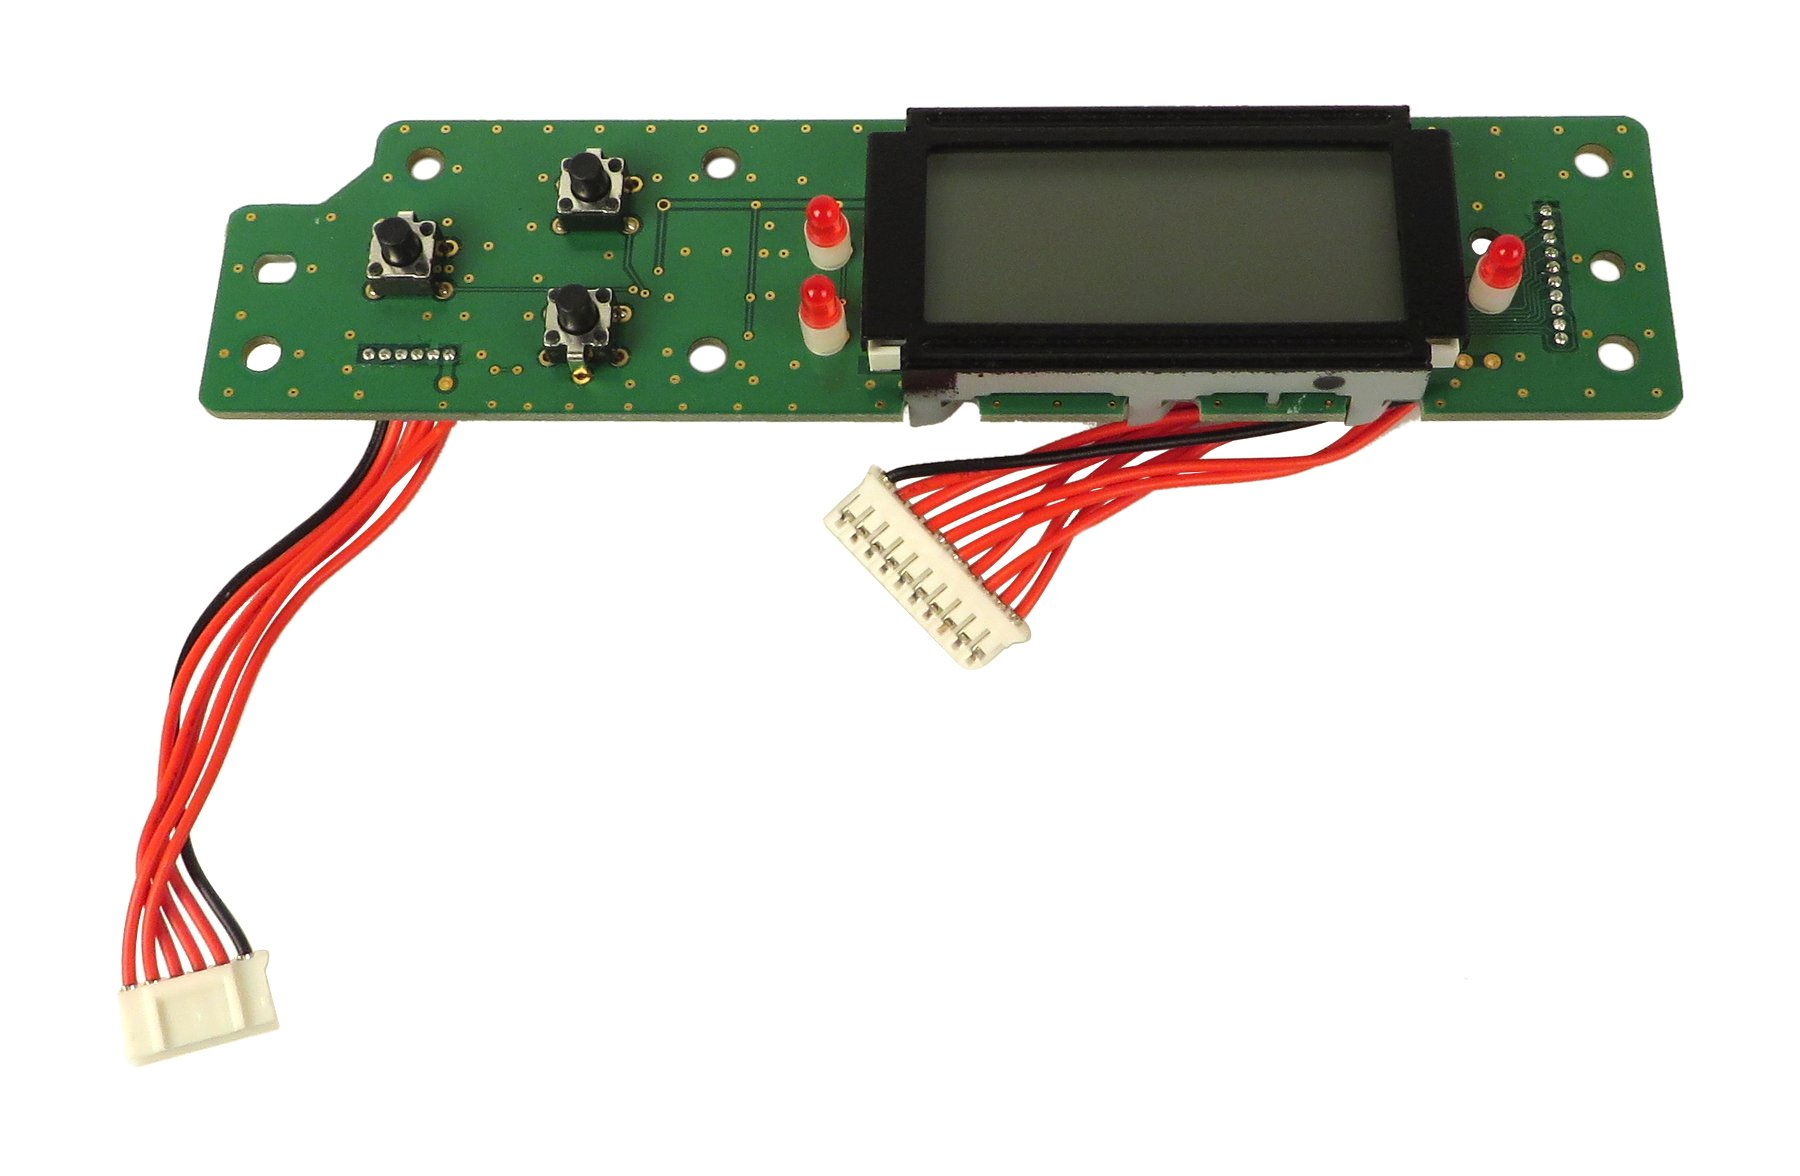 LCD Display Assembly for ATW-R3100C